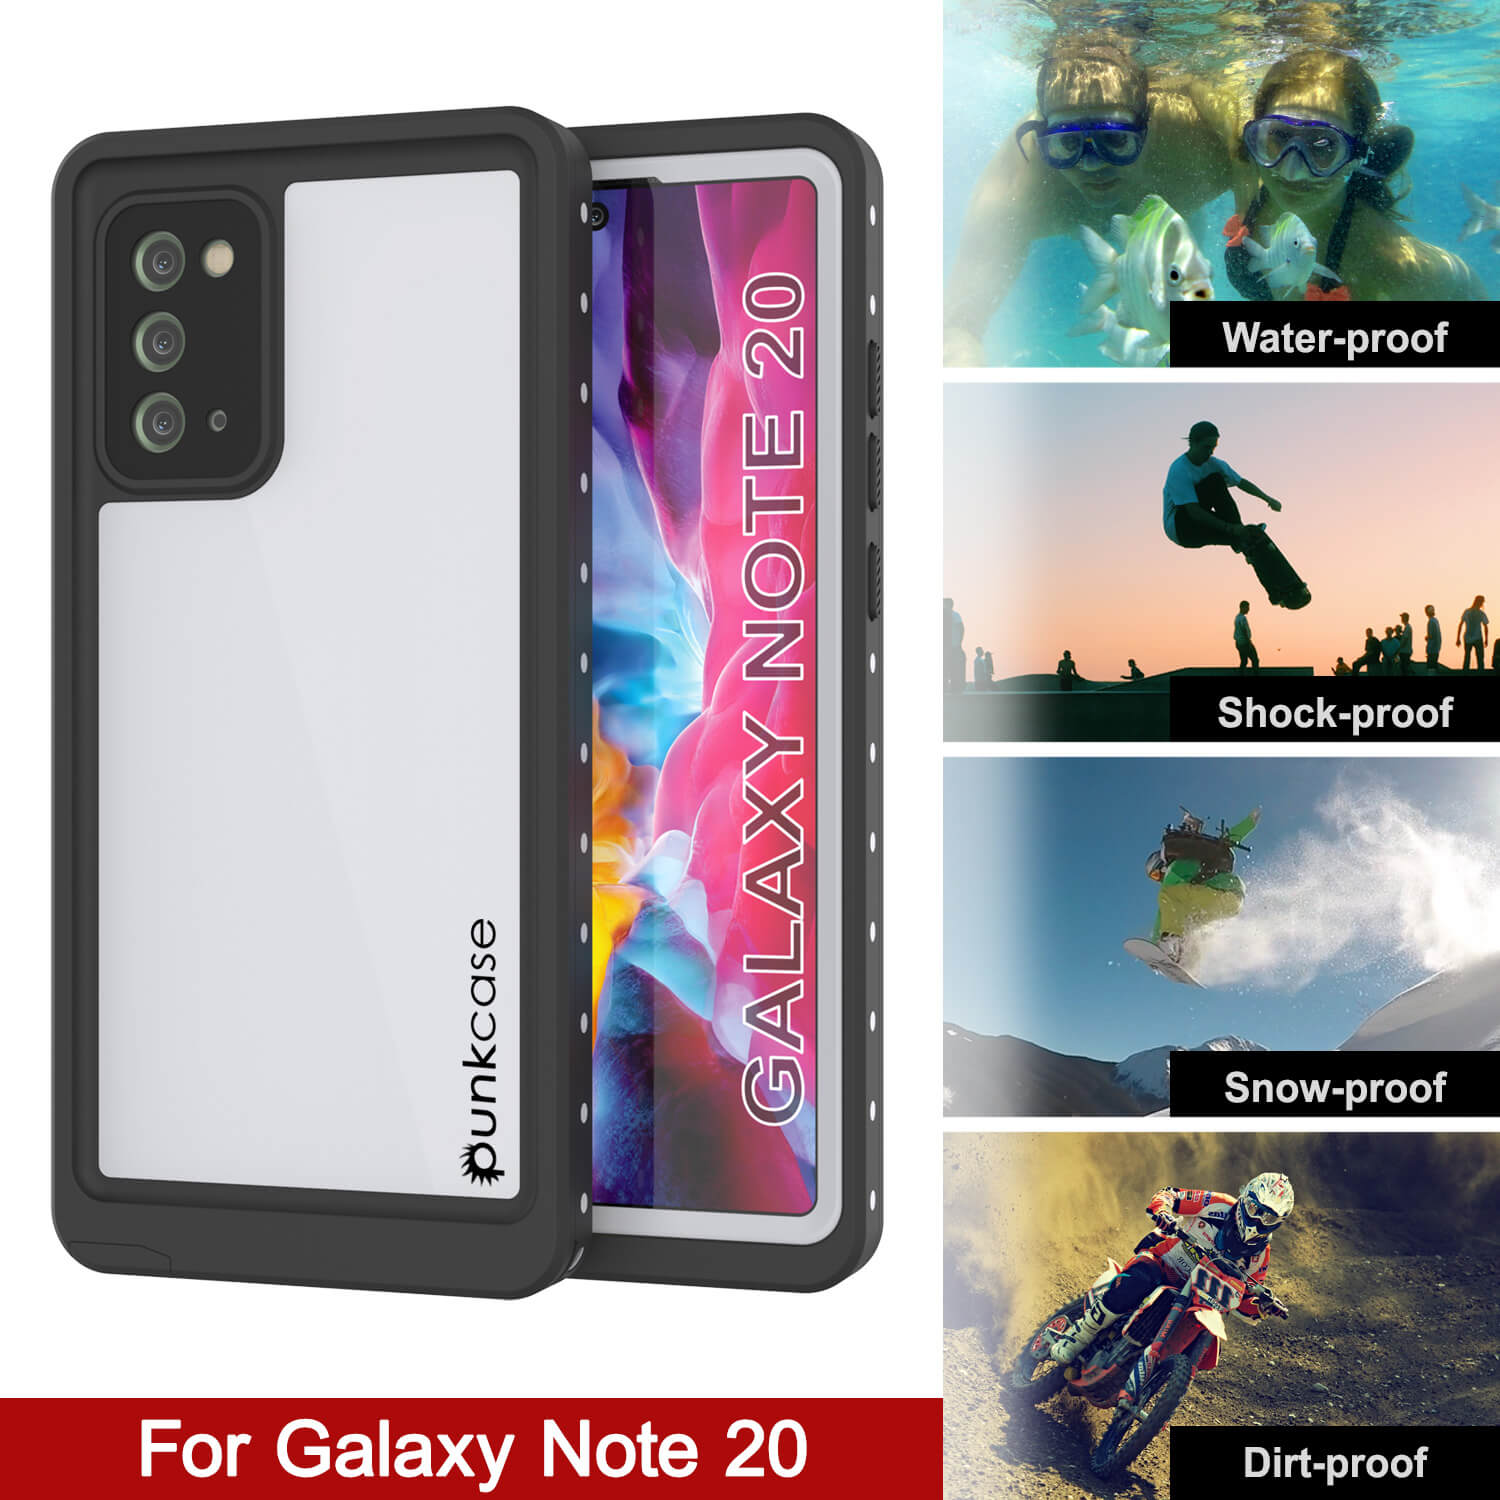 Galaxy Note 20 Waterproof Case, Punkcase Studstar White Thin Armor Cover